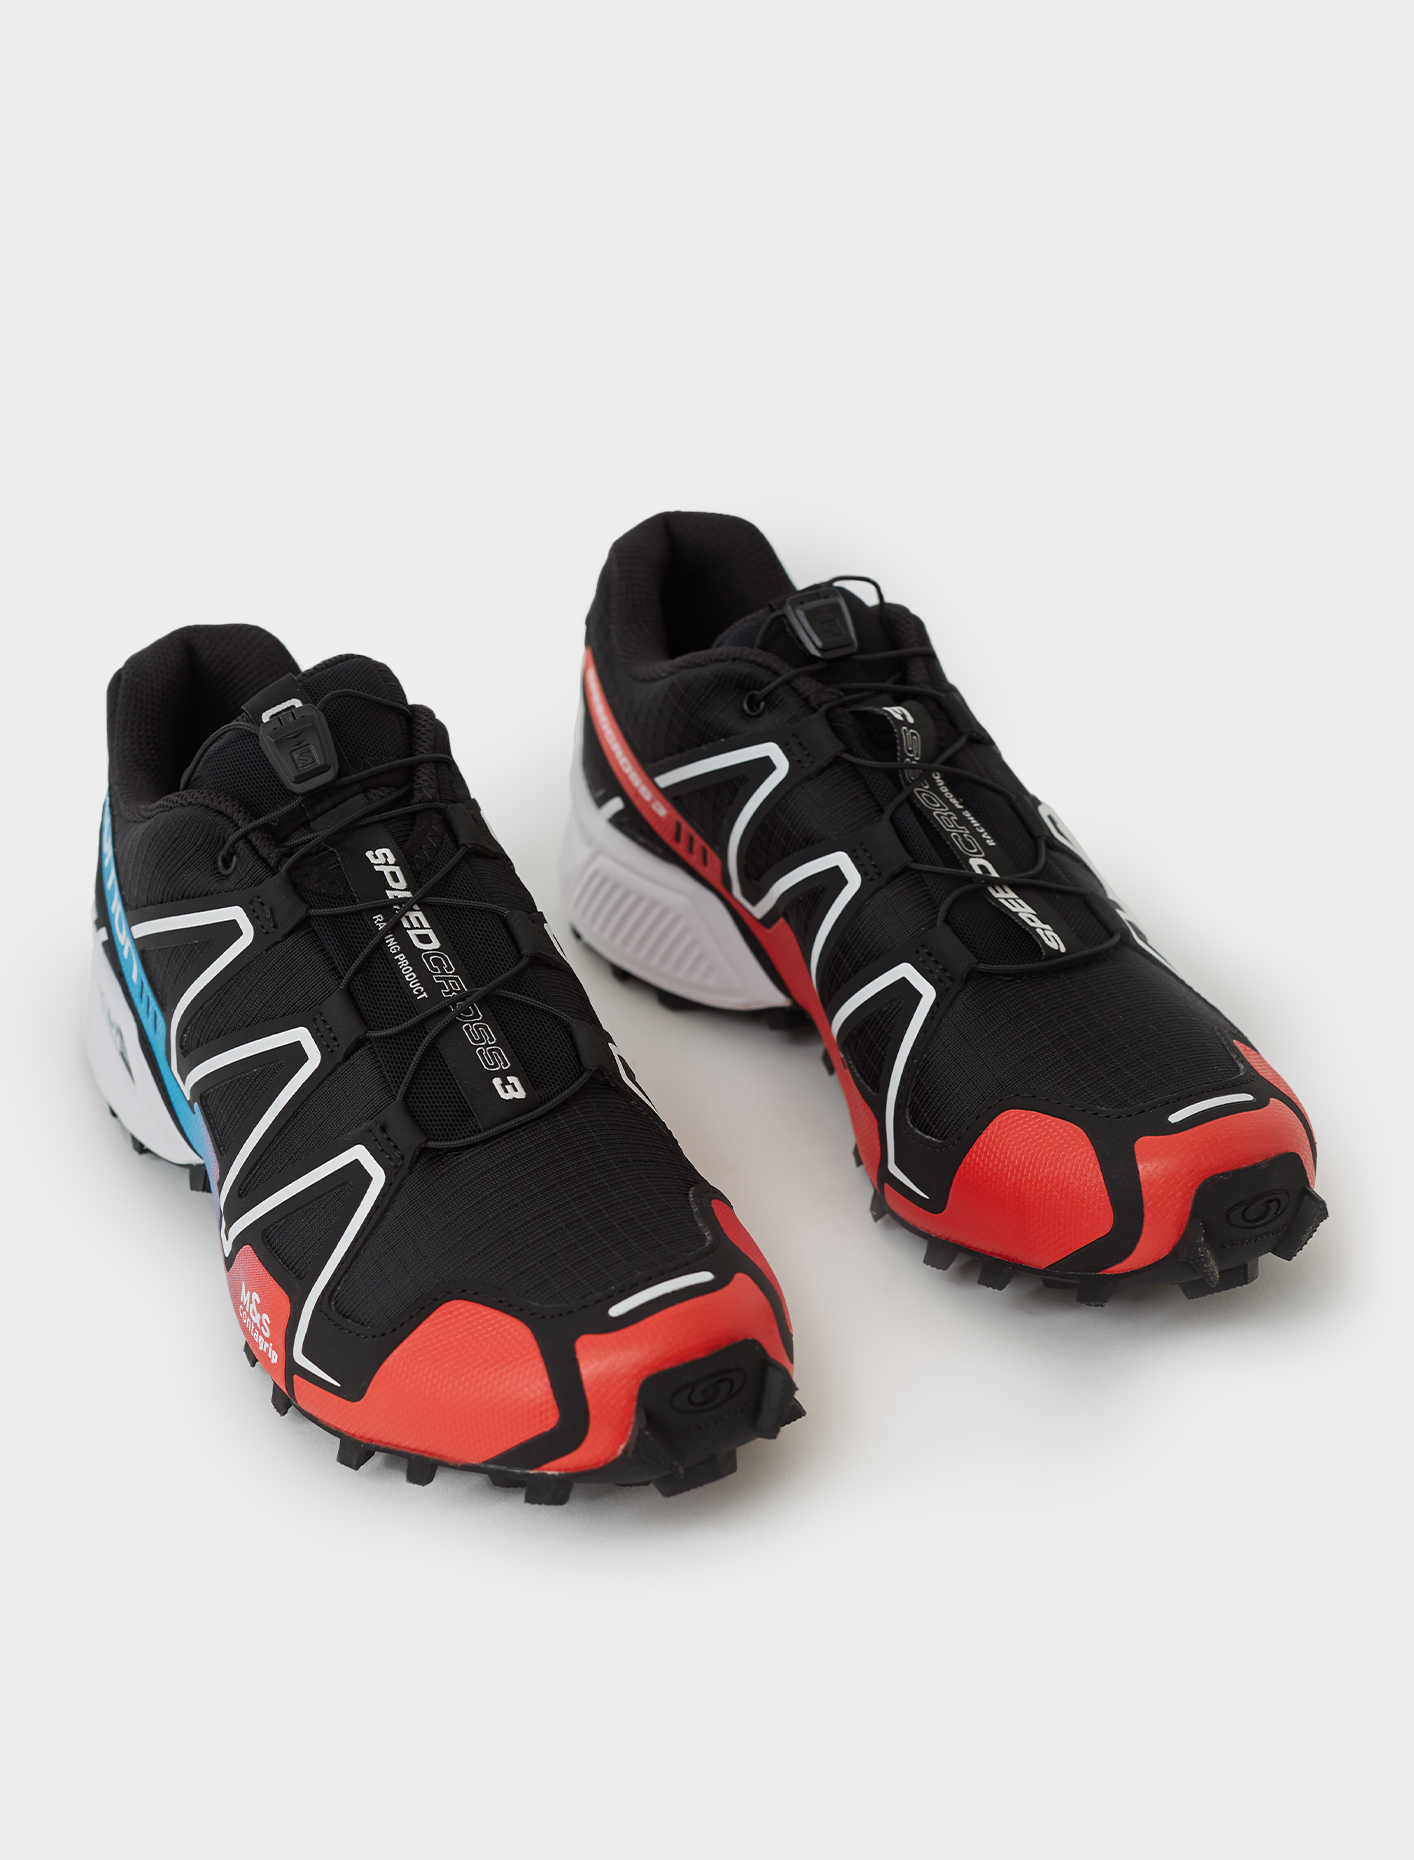 salomon speedcross 3 red 6000 precio